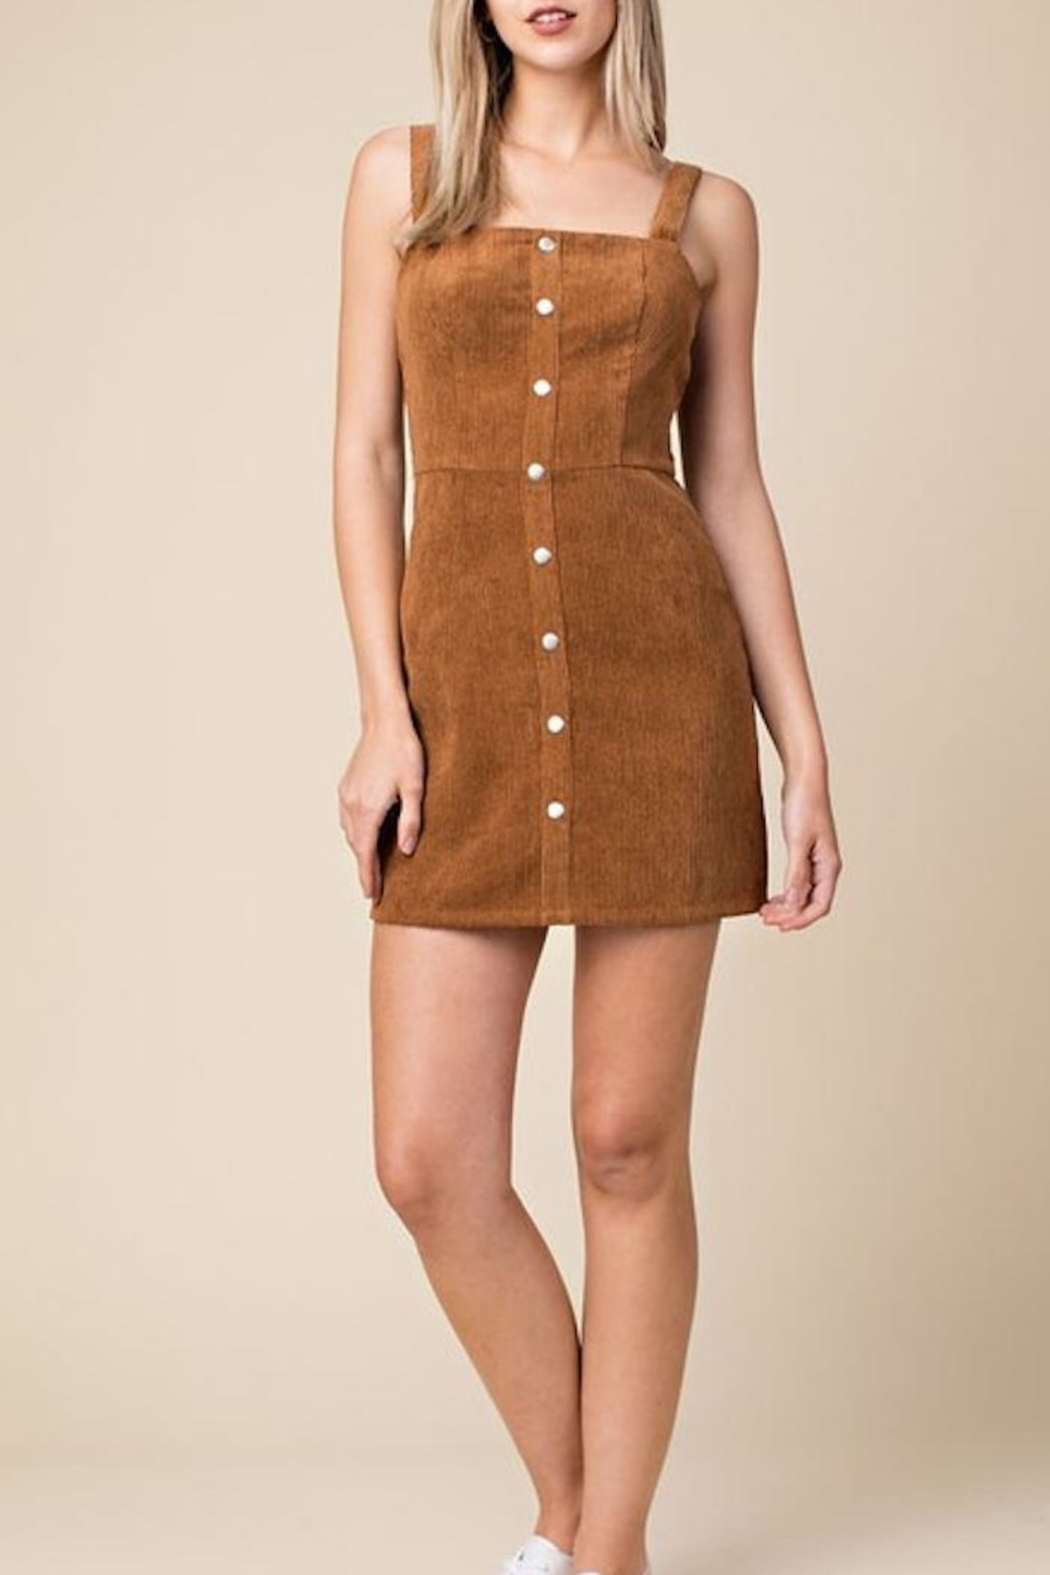 83fef8ba969 Honey punch corduroy overall dress from louisiana yipsy boutique jpg  1050x1575 Brown corduroy overall dress